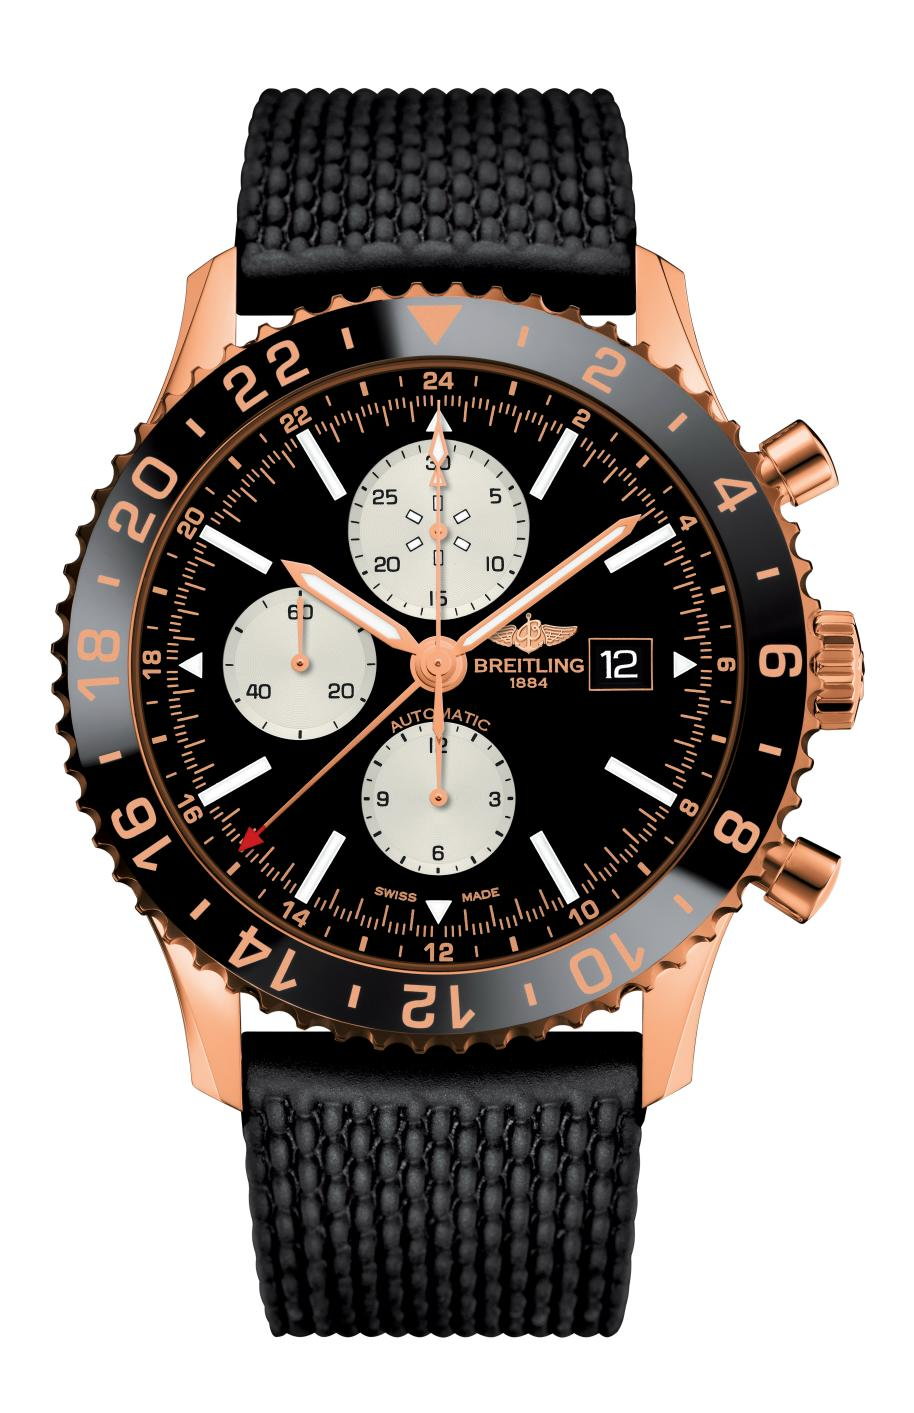 Breitling-Chronoliner-Limited-Edition-3